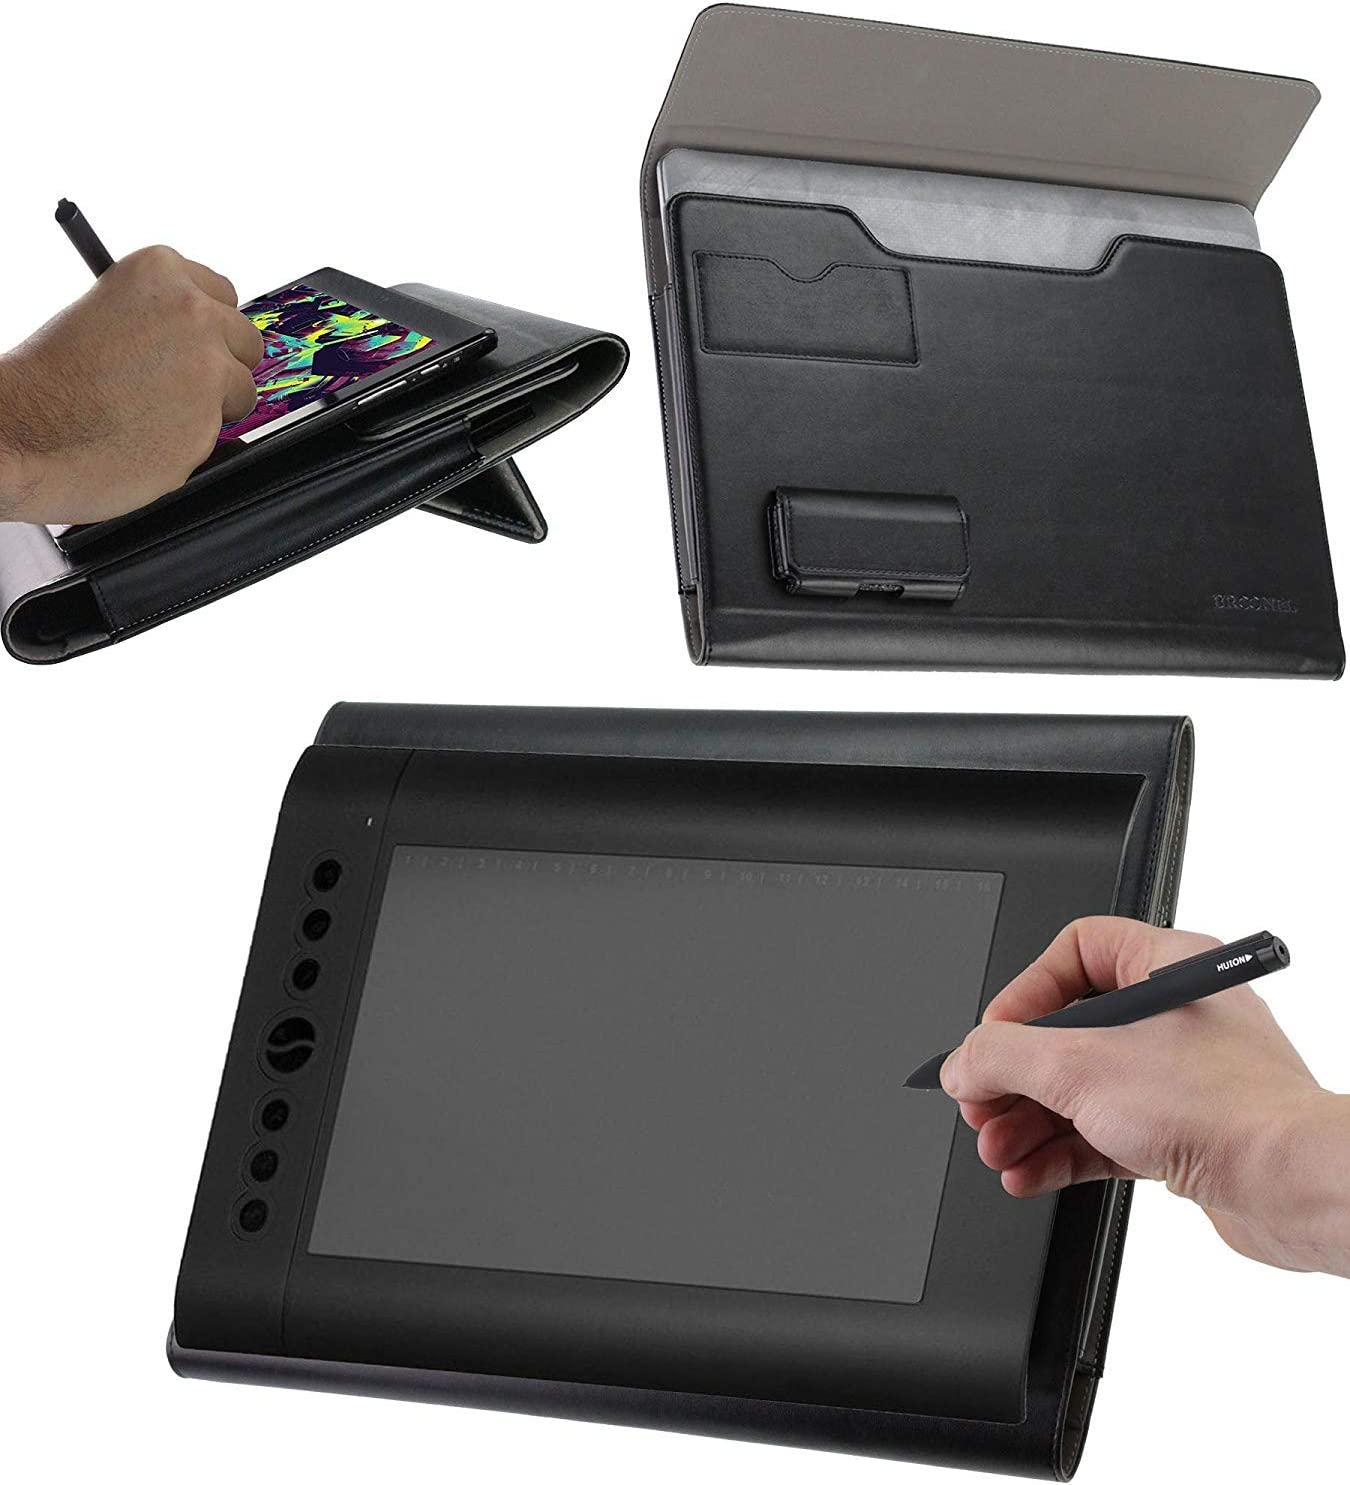 Broonel SEAL limited product Luxury Leather Graphics Tablet Built-in Case Ergono trend rank with